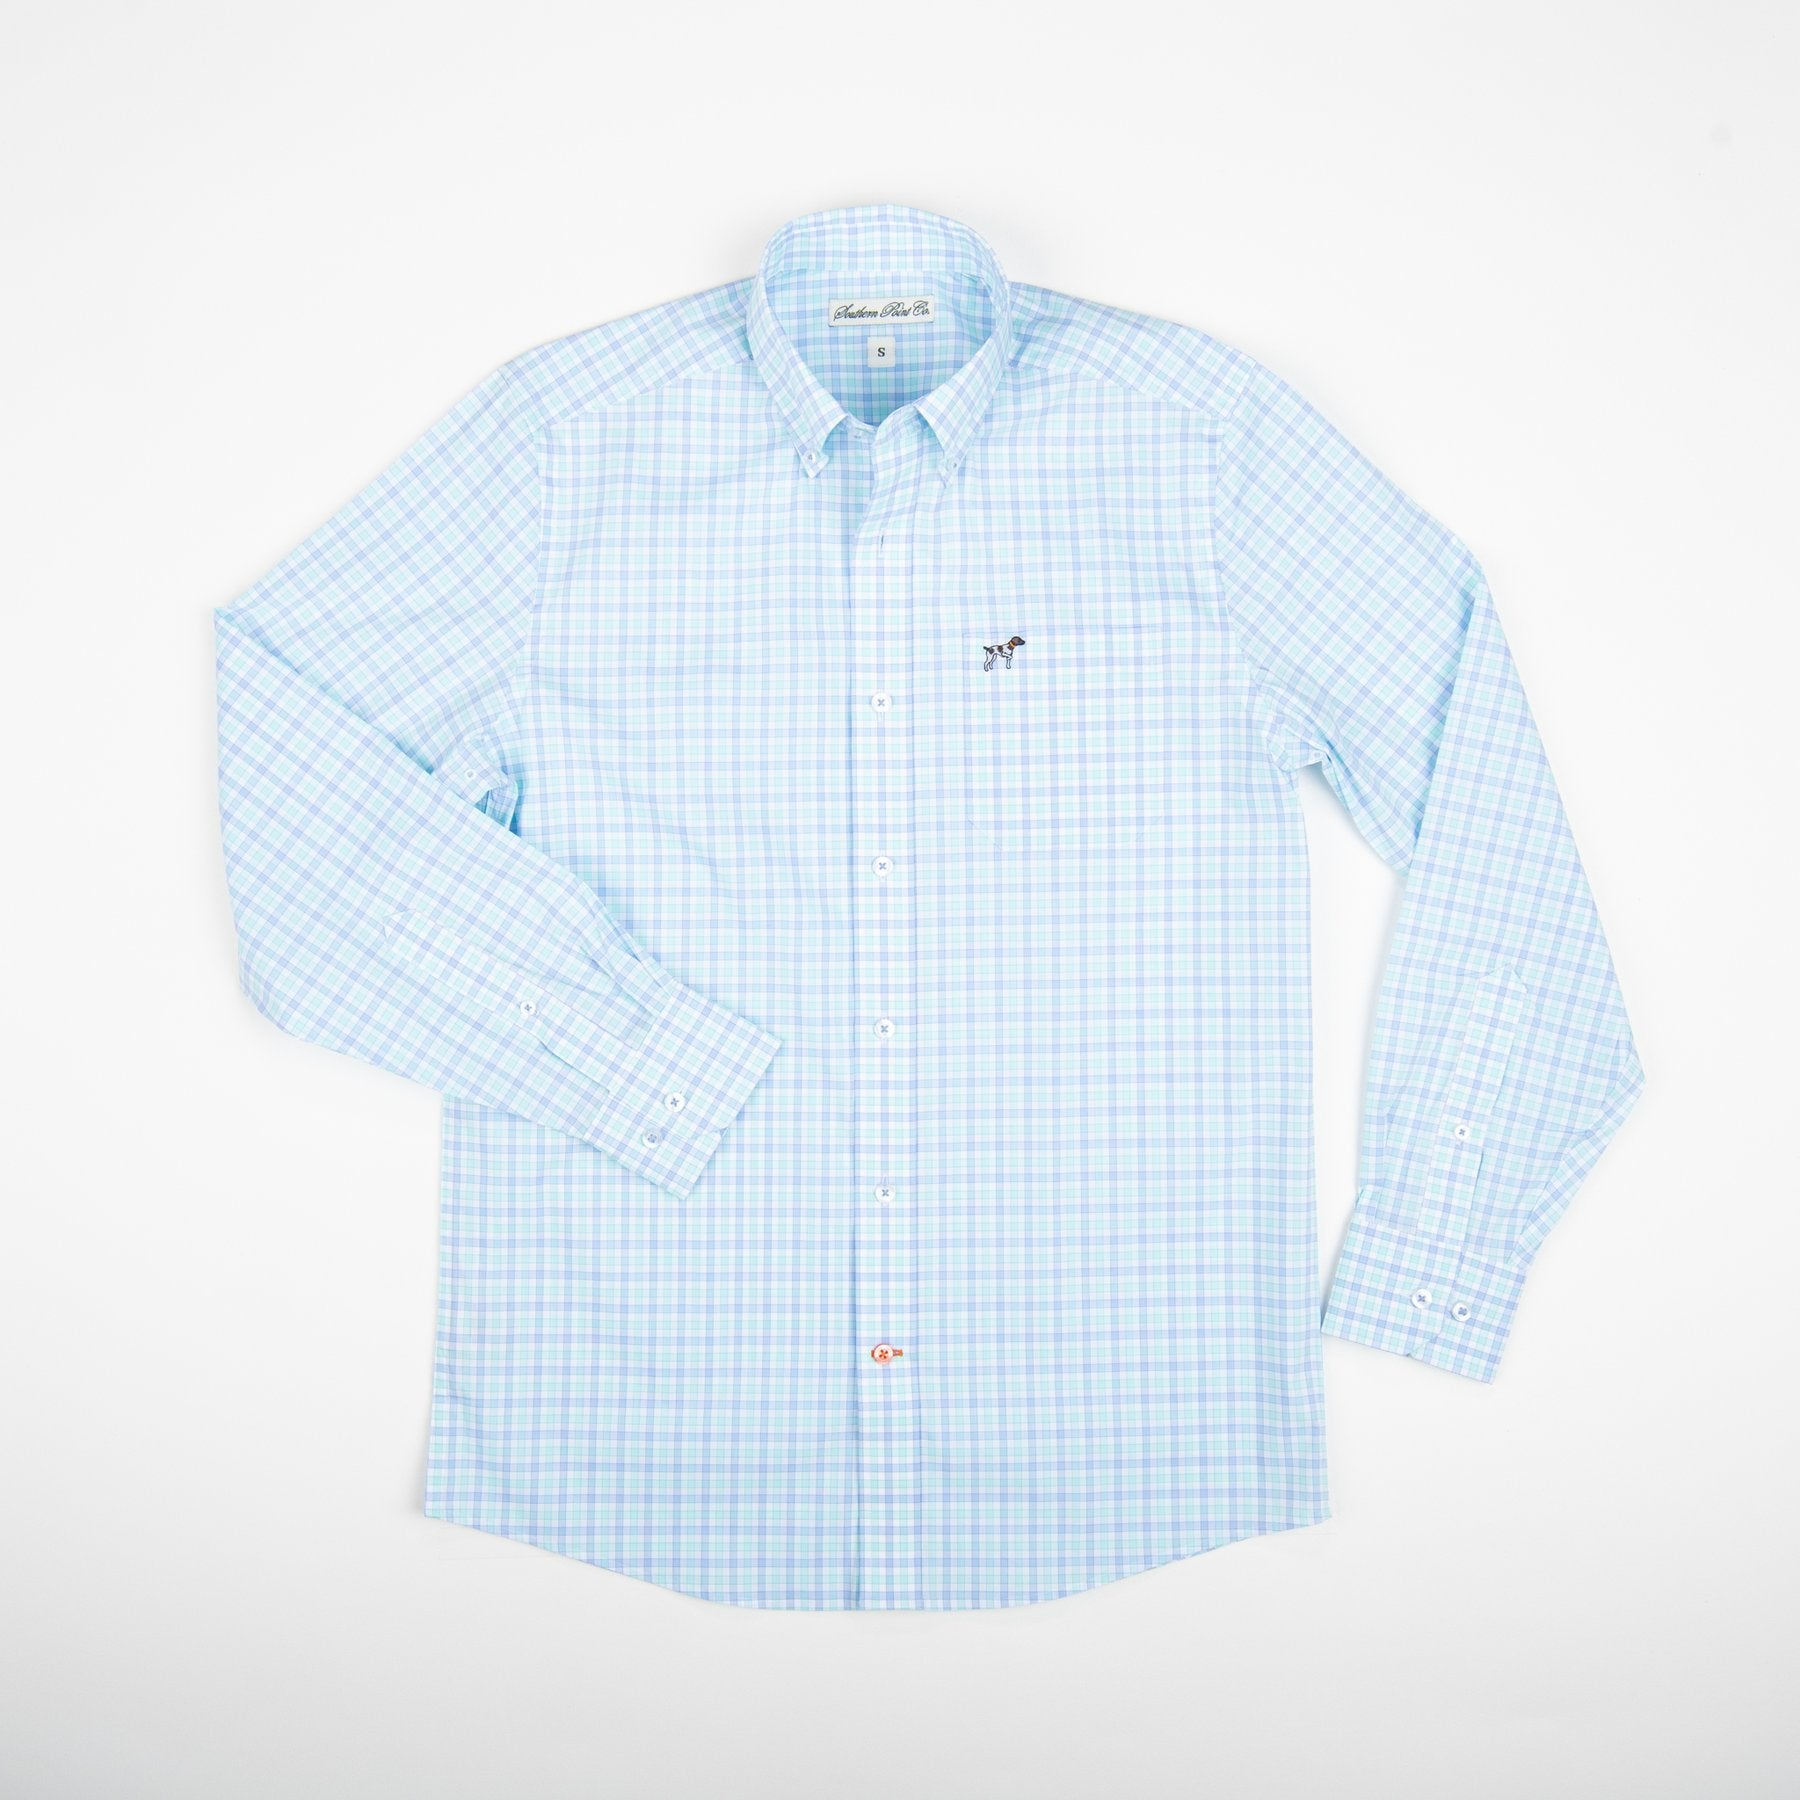 Southern Point Co. Men's Sport Shirt AQUA / S Southern Point Hadley Summerweight || David's Clothing HS10